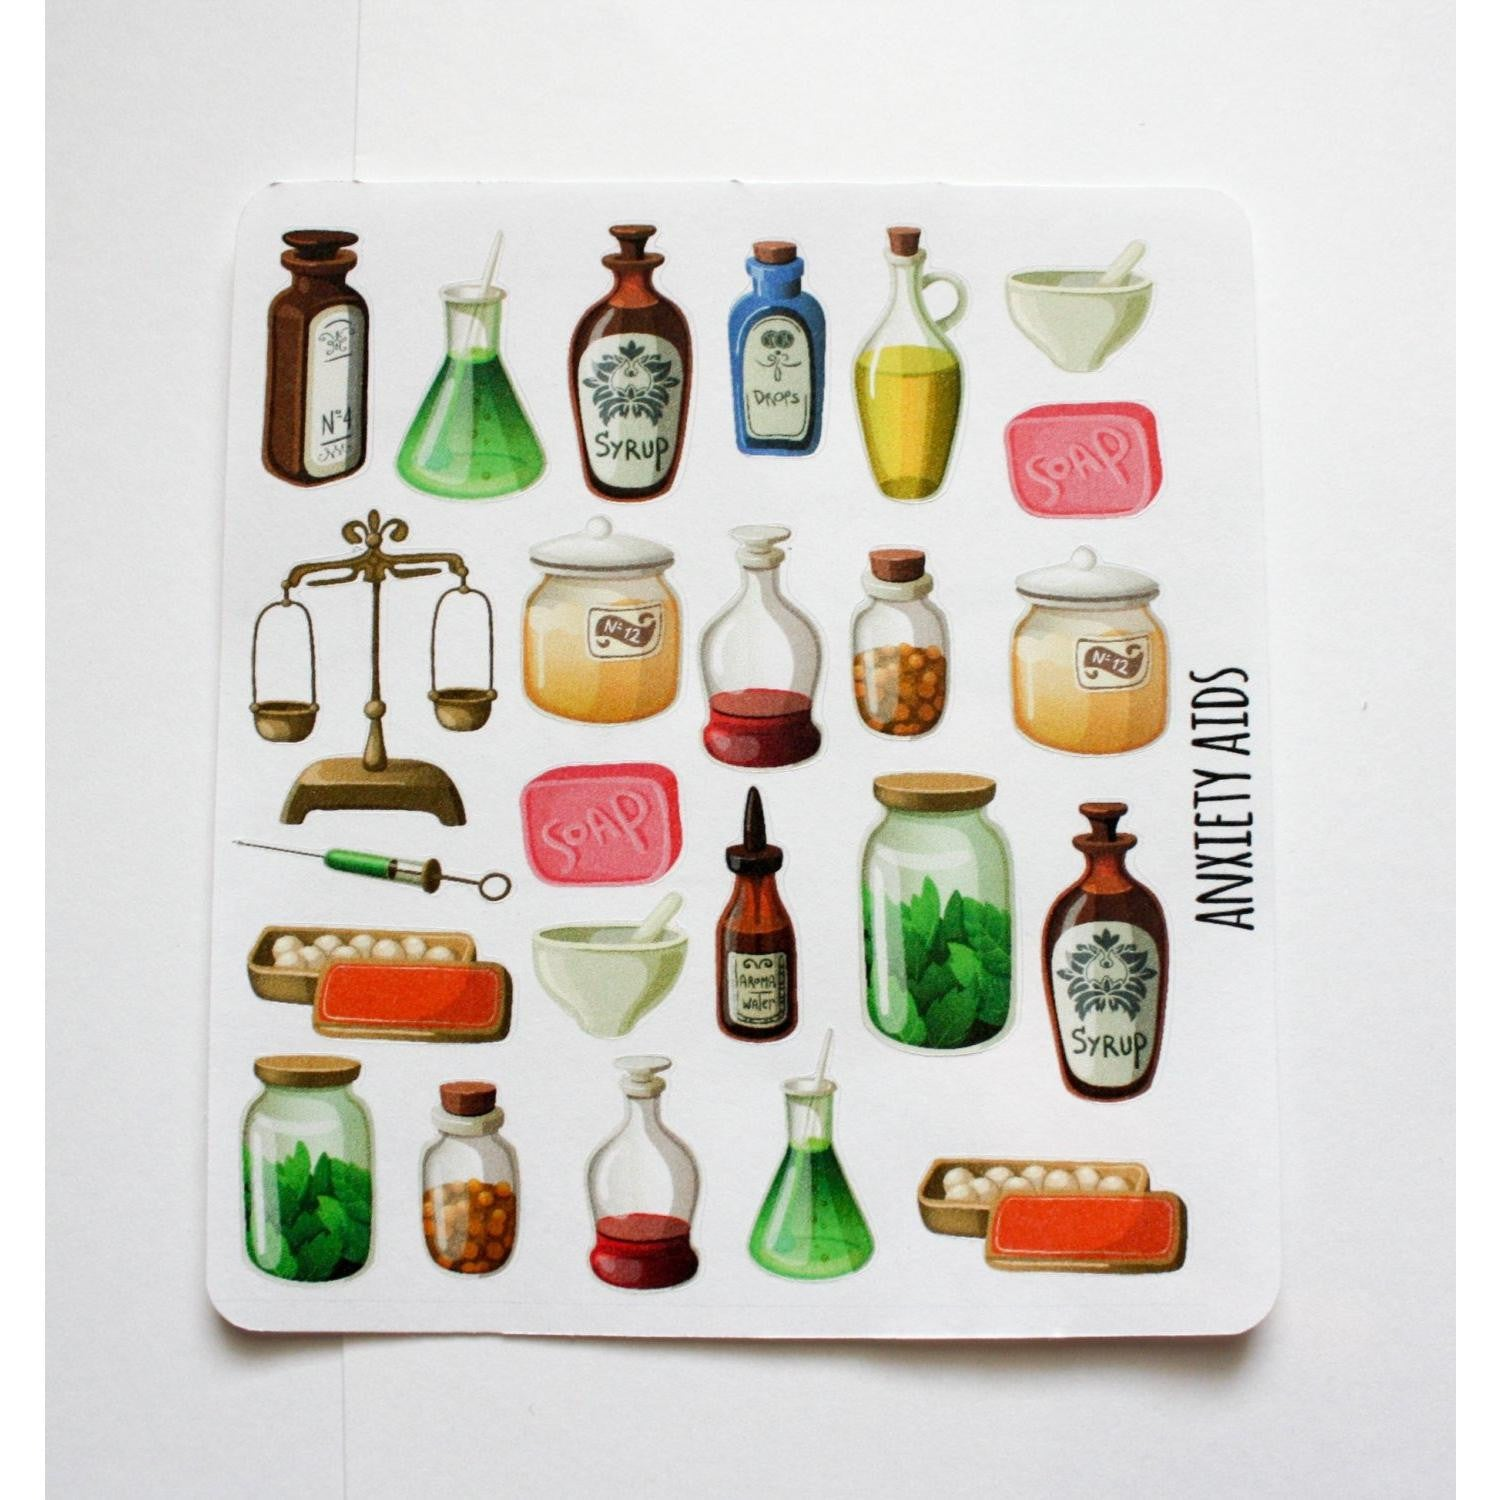 DECO-06 Rustic Apothecary Planner decorating stickers - Anxiety Aids - 1